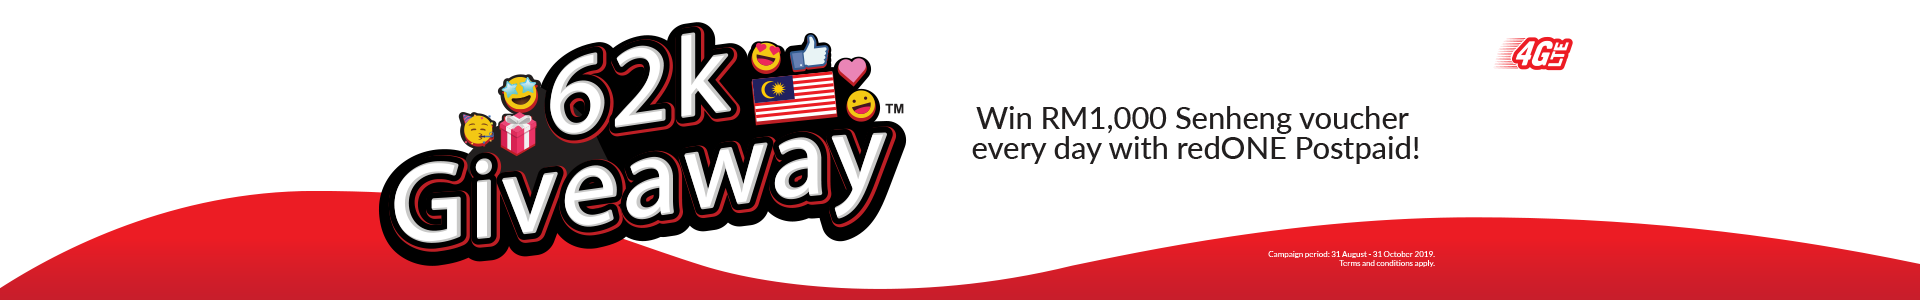 Win RM1,000 Senheng voucher every day when you subscribe to redONE Postpaid plans! T&C Apply.